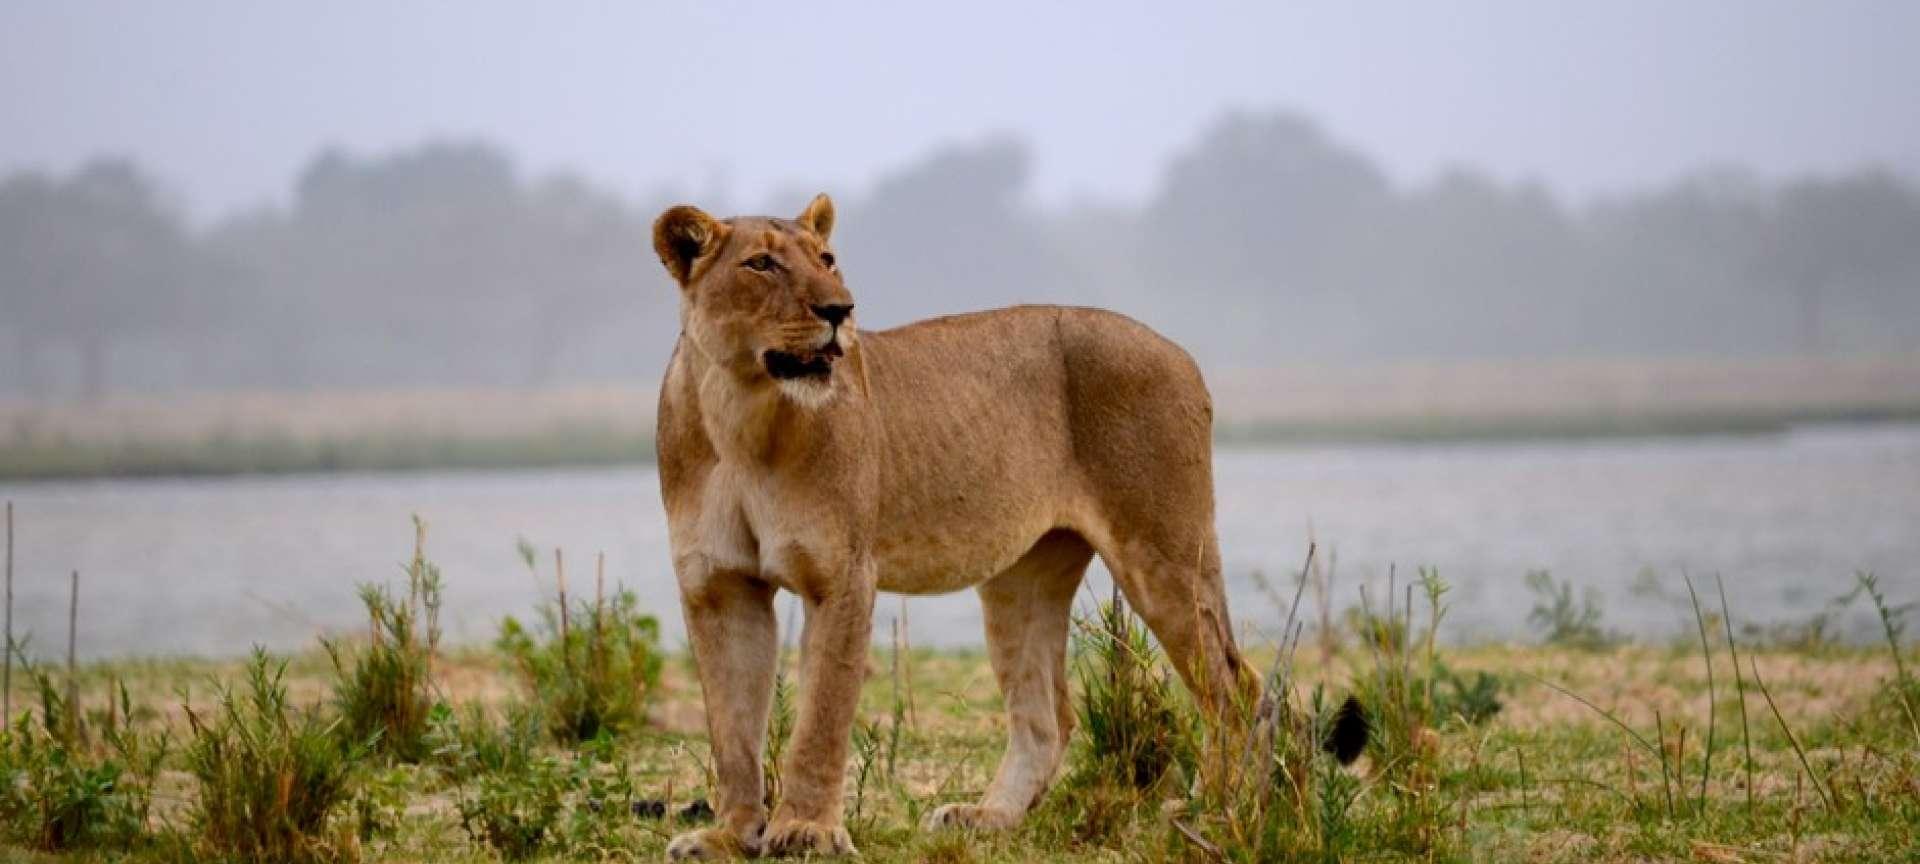 A lioness on the prowl in Lower Zambezi National Park